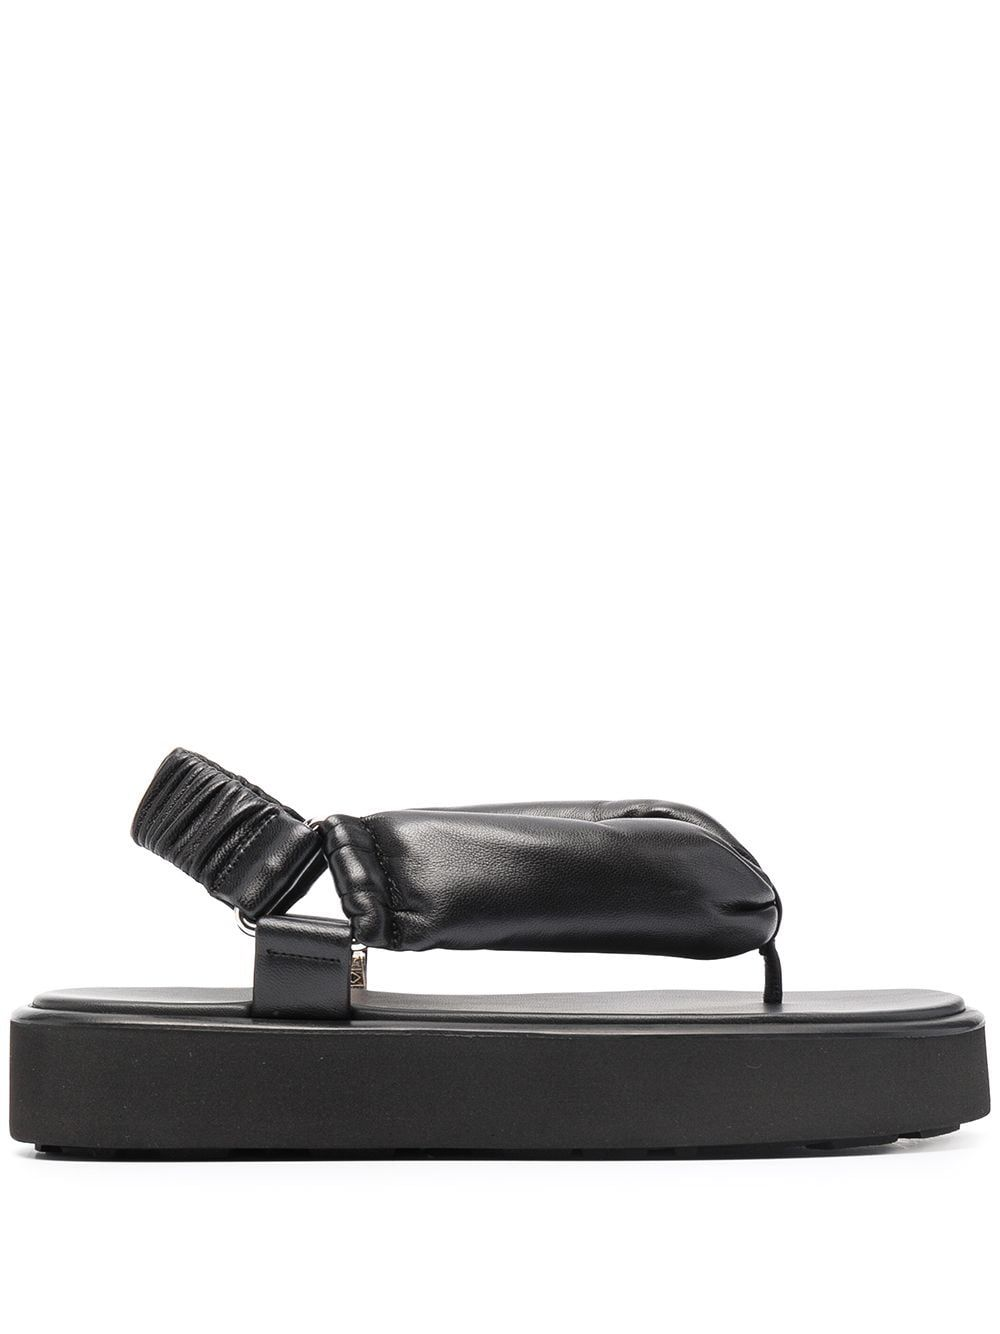 Miu Miu MIU MIU WOMEN'S BLACK LEATHER SANDALS